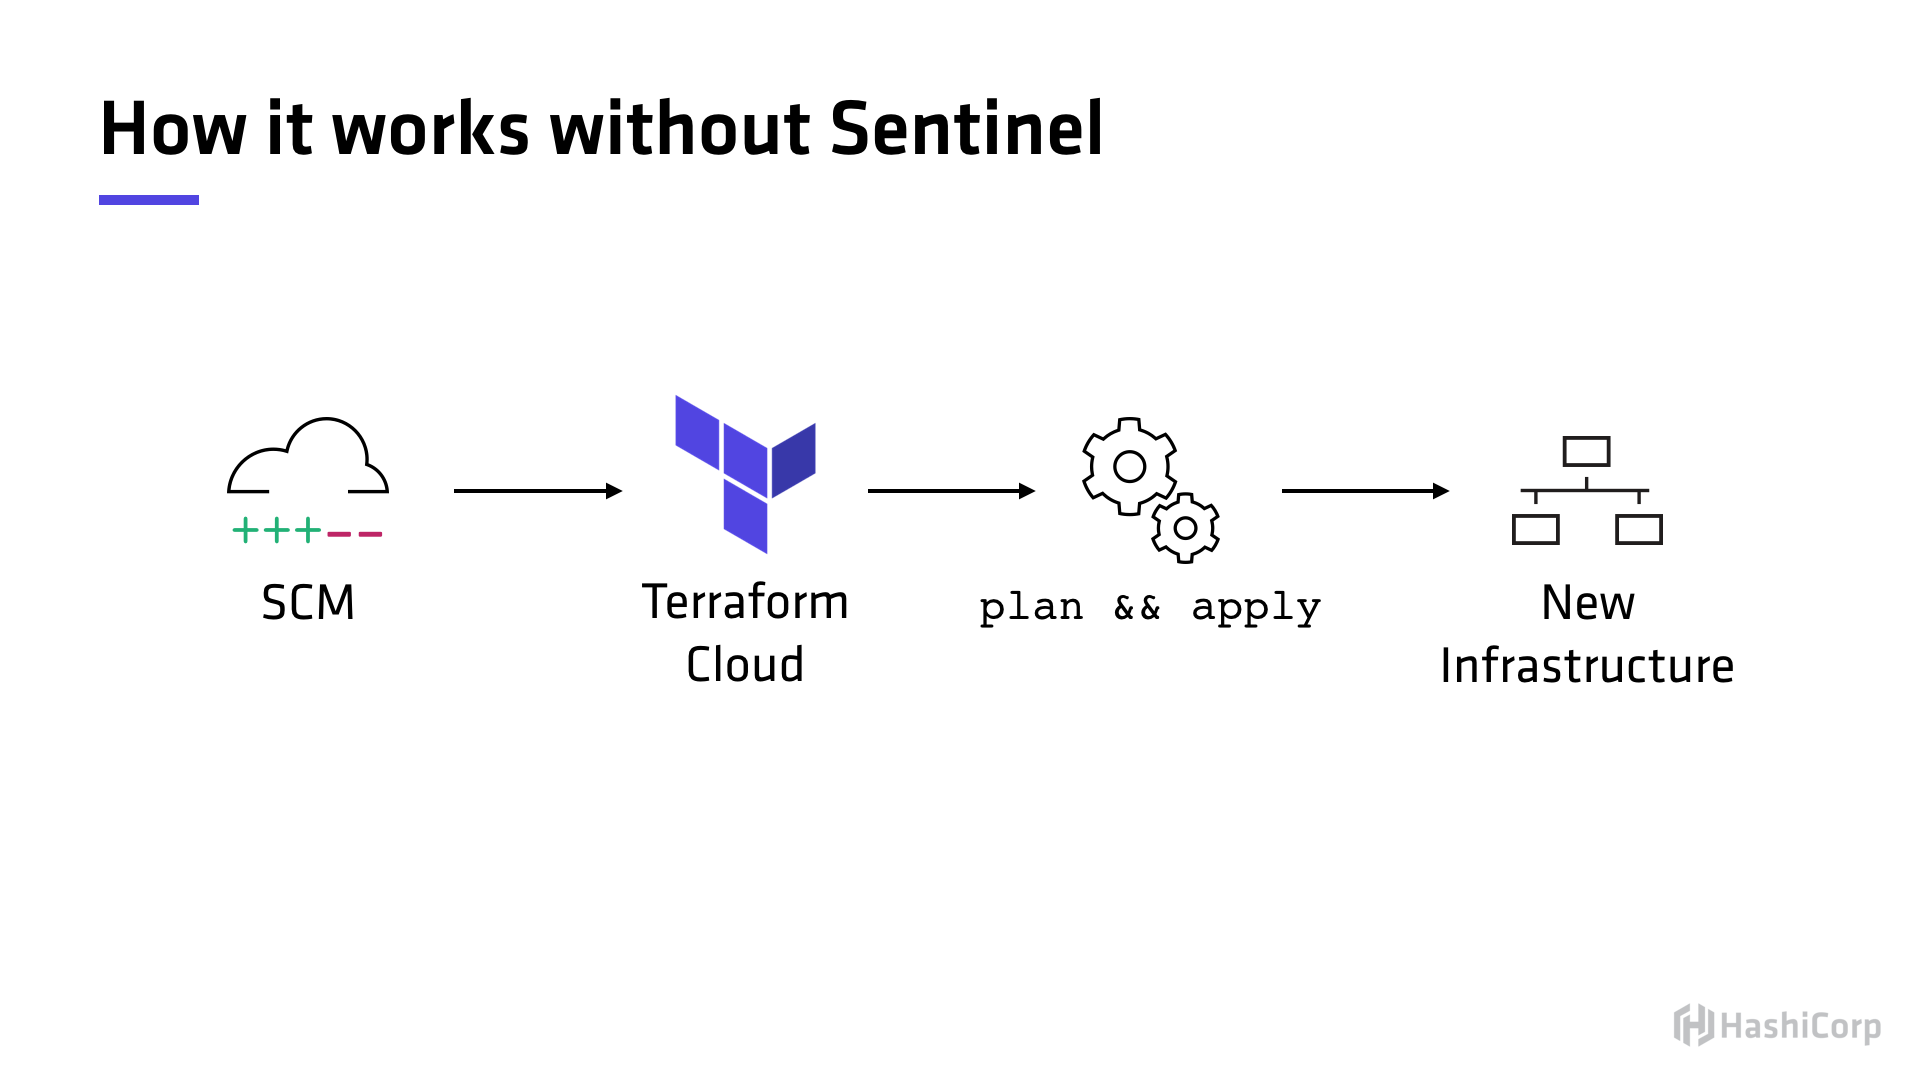 Without Sentinel